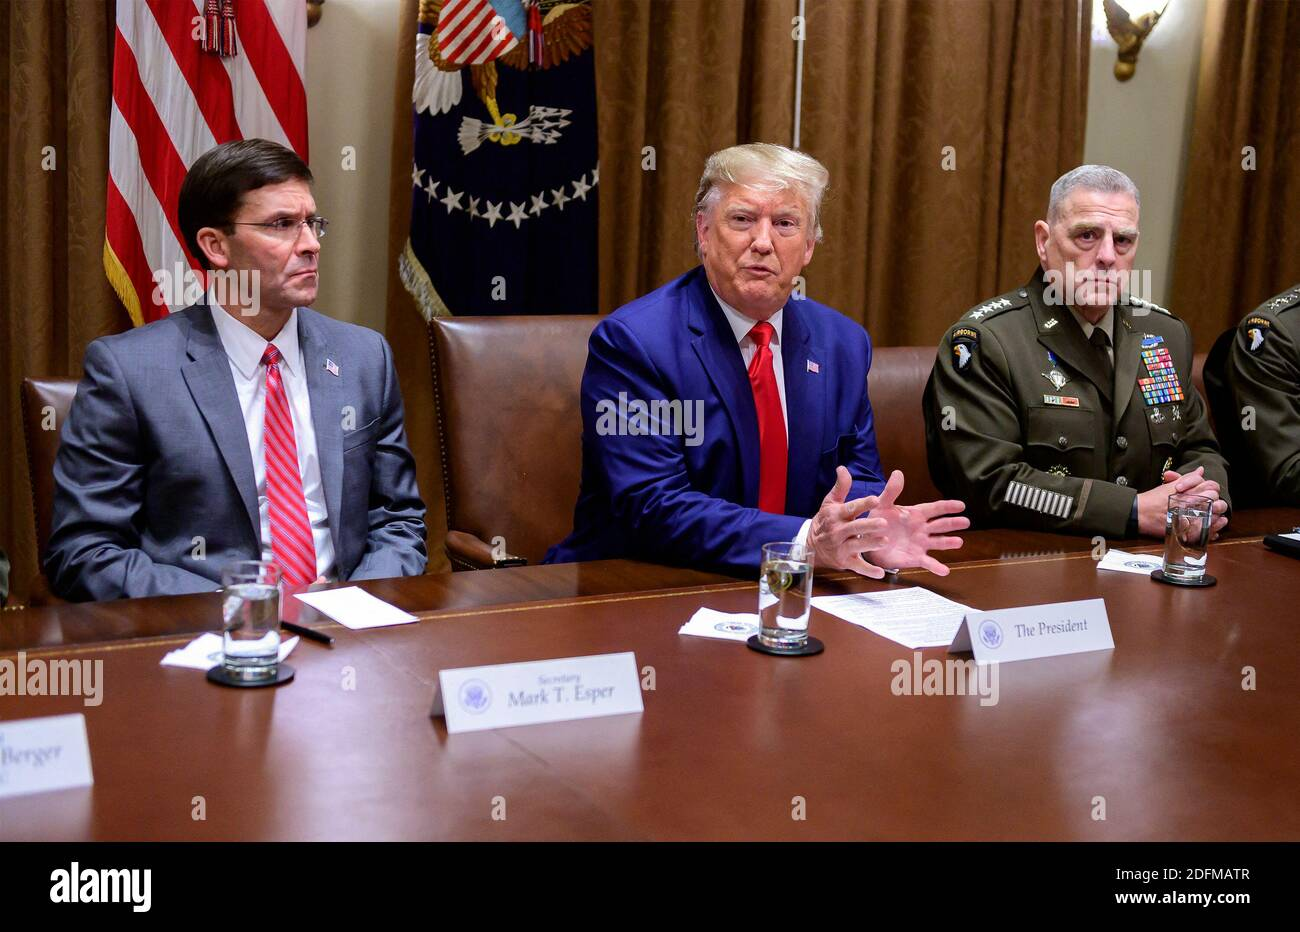 President Donal Trump Dismisses Defence Minister Mark Esper - File -United States President Donald J. Trump answers a reporter's question as he participates in a briefing with senior military leaders in the Cabinet Room of the White House in Washington, DC, USA on Monday, October 7, 2019. At left is United States Secretary of Defense Dr. Mark T. Esper, left, and at right is United States Army General Mark A. Milley, Chairman of the Joint Chiefs of Staff. Photo by Ron Sachs/CNP/ABACAPRESS.COM Stock Photo